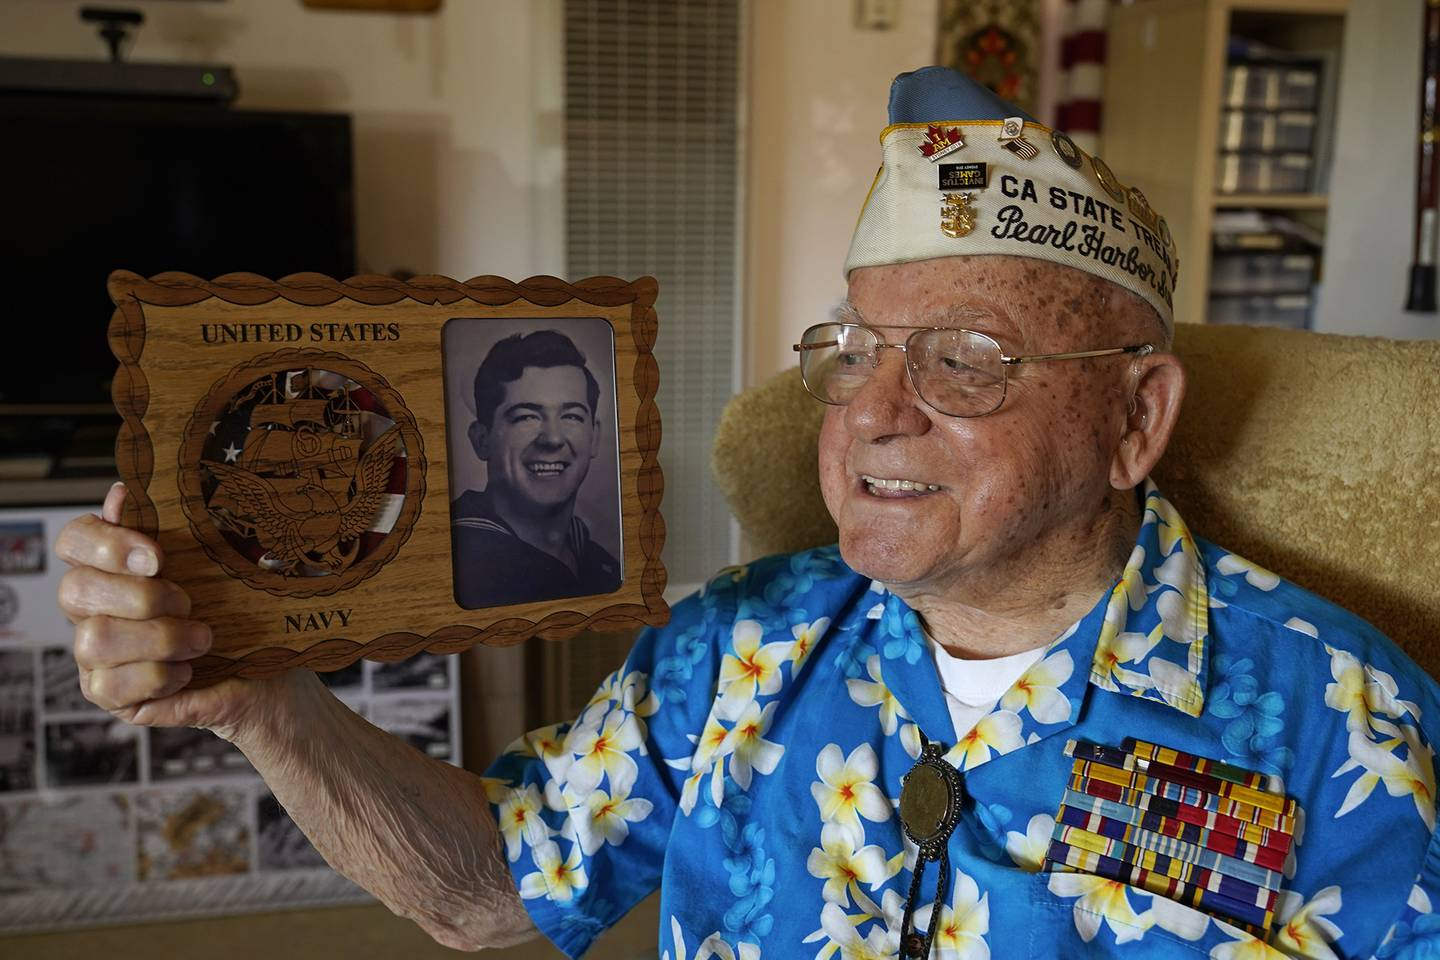 Mickey Ganitch, a survivor of the 1941 attack on Pearl Harbor, holds a plaque with a picture of himself as a young sailor, while sitting in the living room of his home in San Leandro, Calif. Nov. 20, 2020.